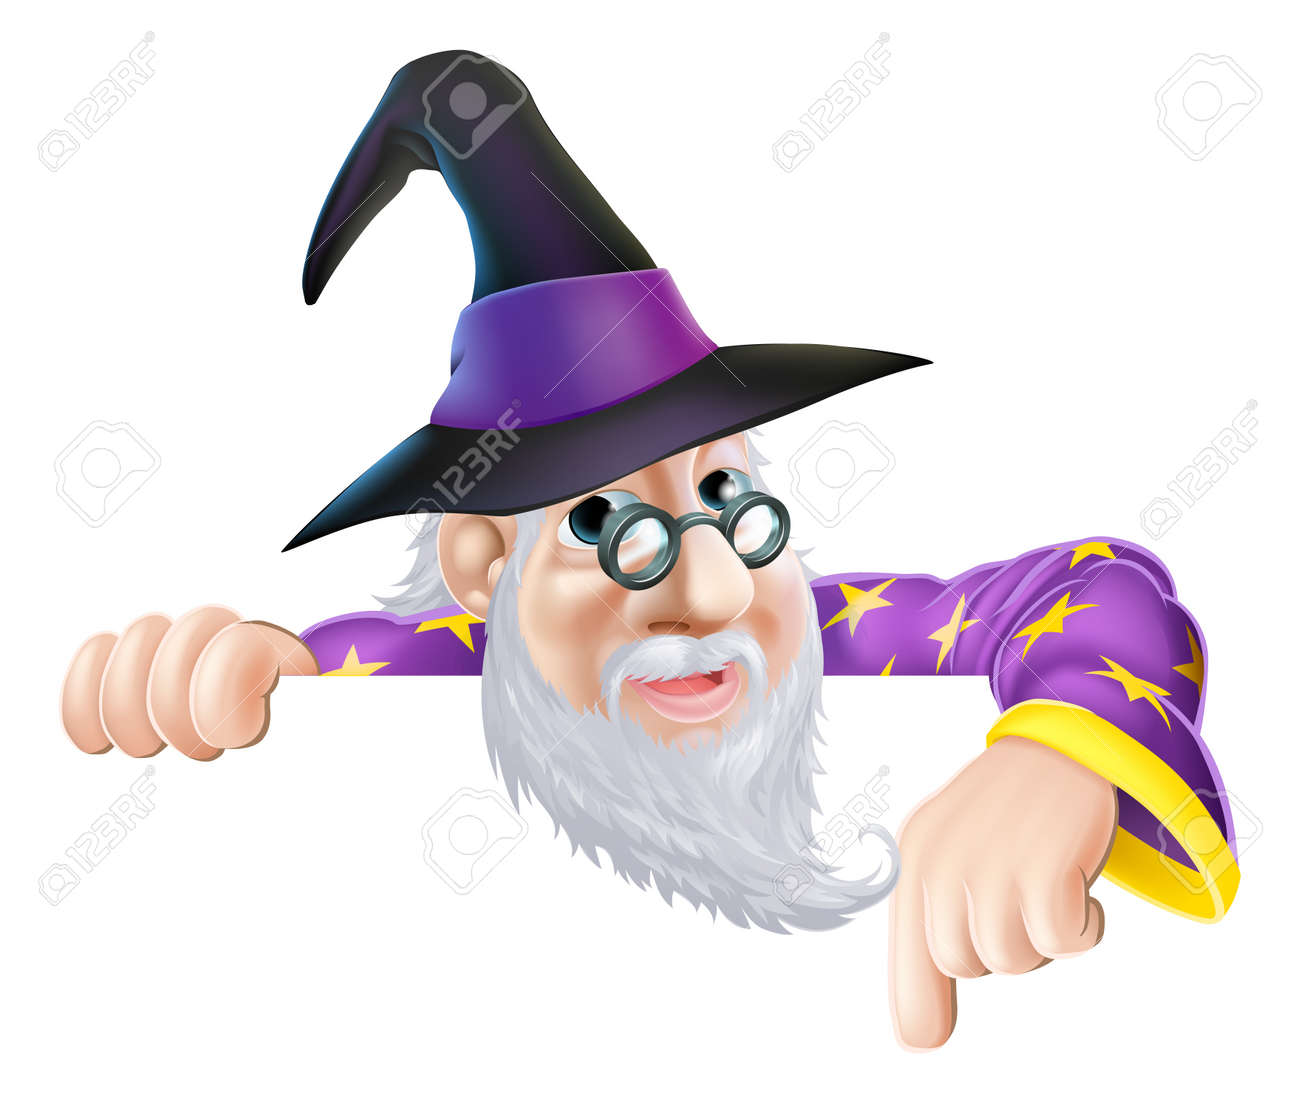 An illustration of a wizard cartoon character peeking over a sign or banner and pointing down Stock Vector - 21822850